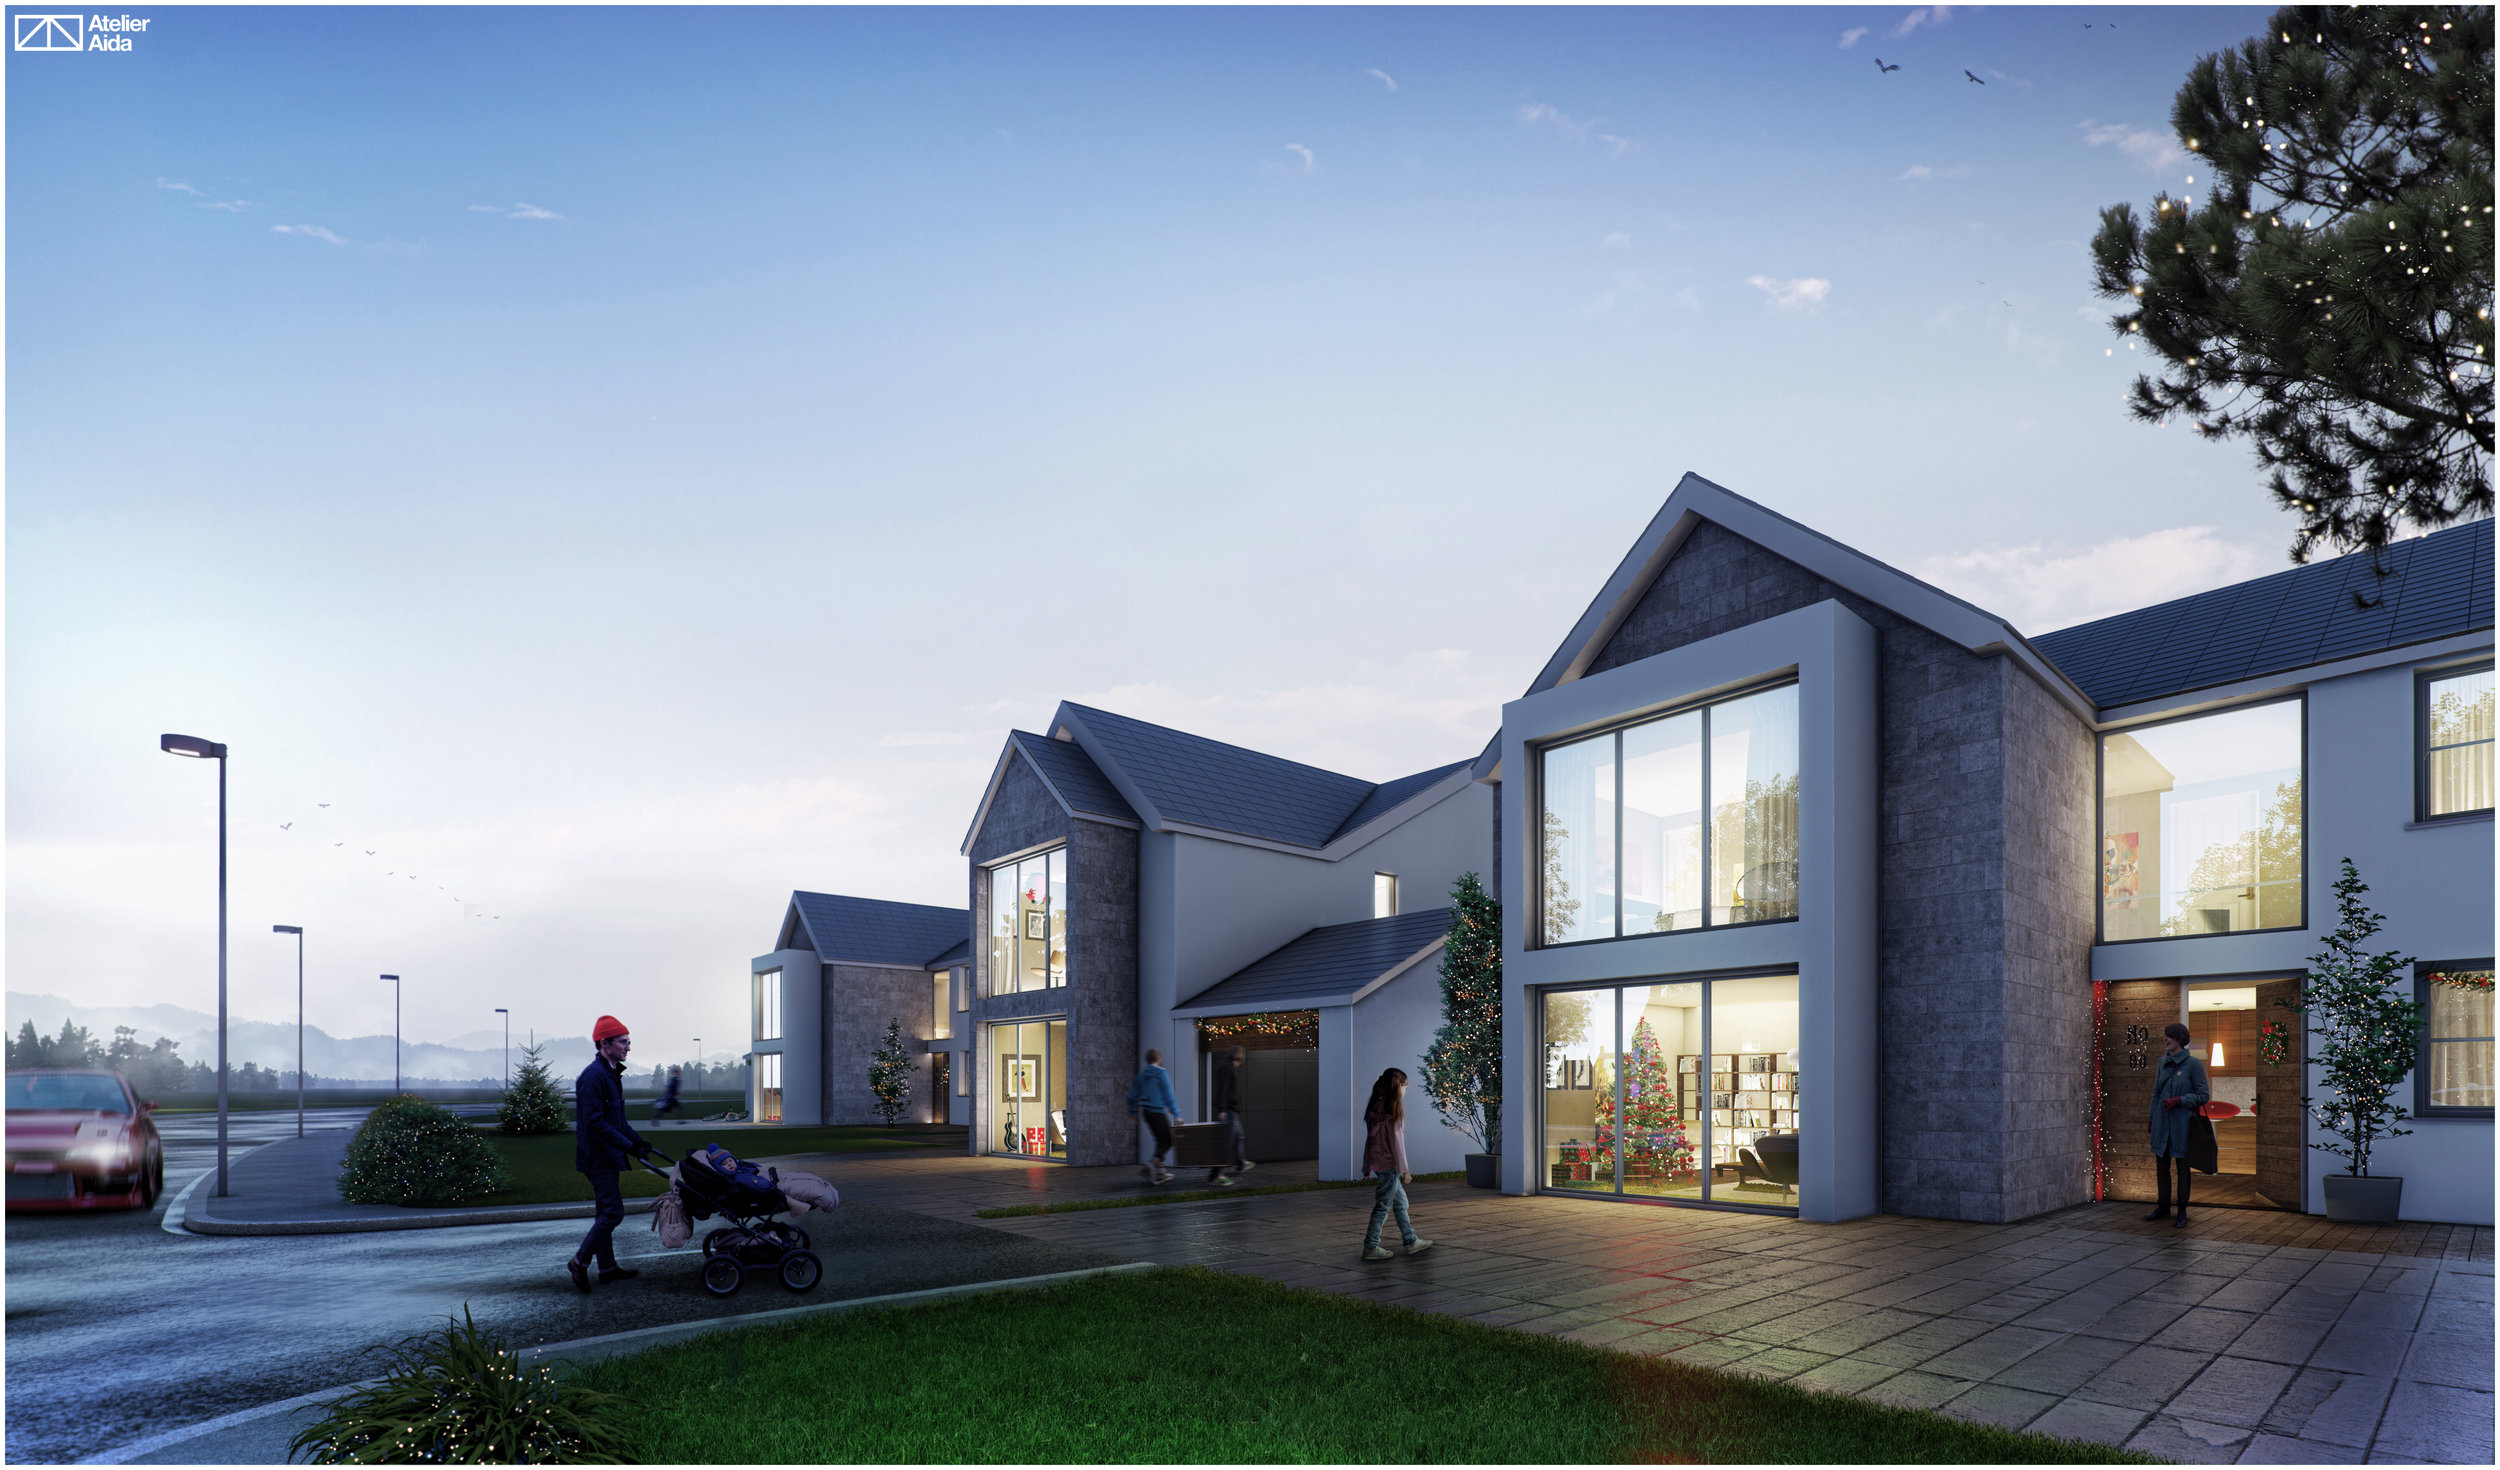 small resolution of 3 new houses old way bishopstone swansea